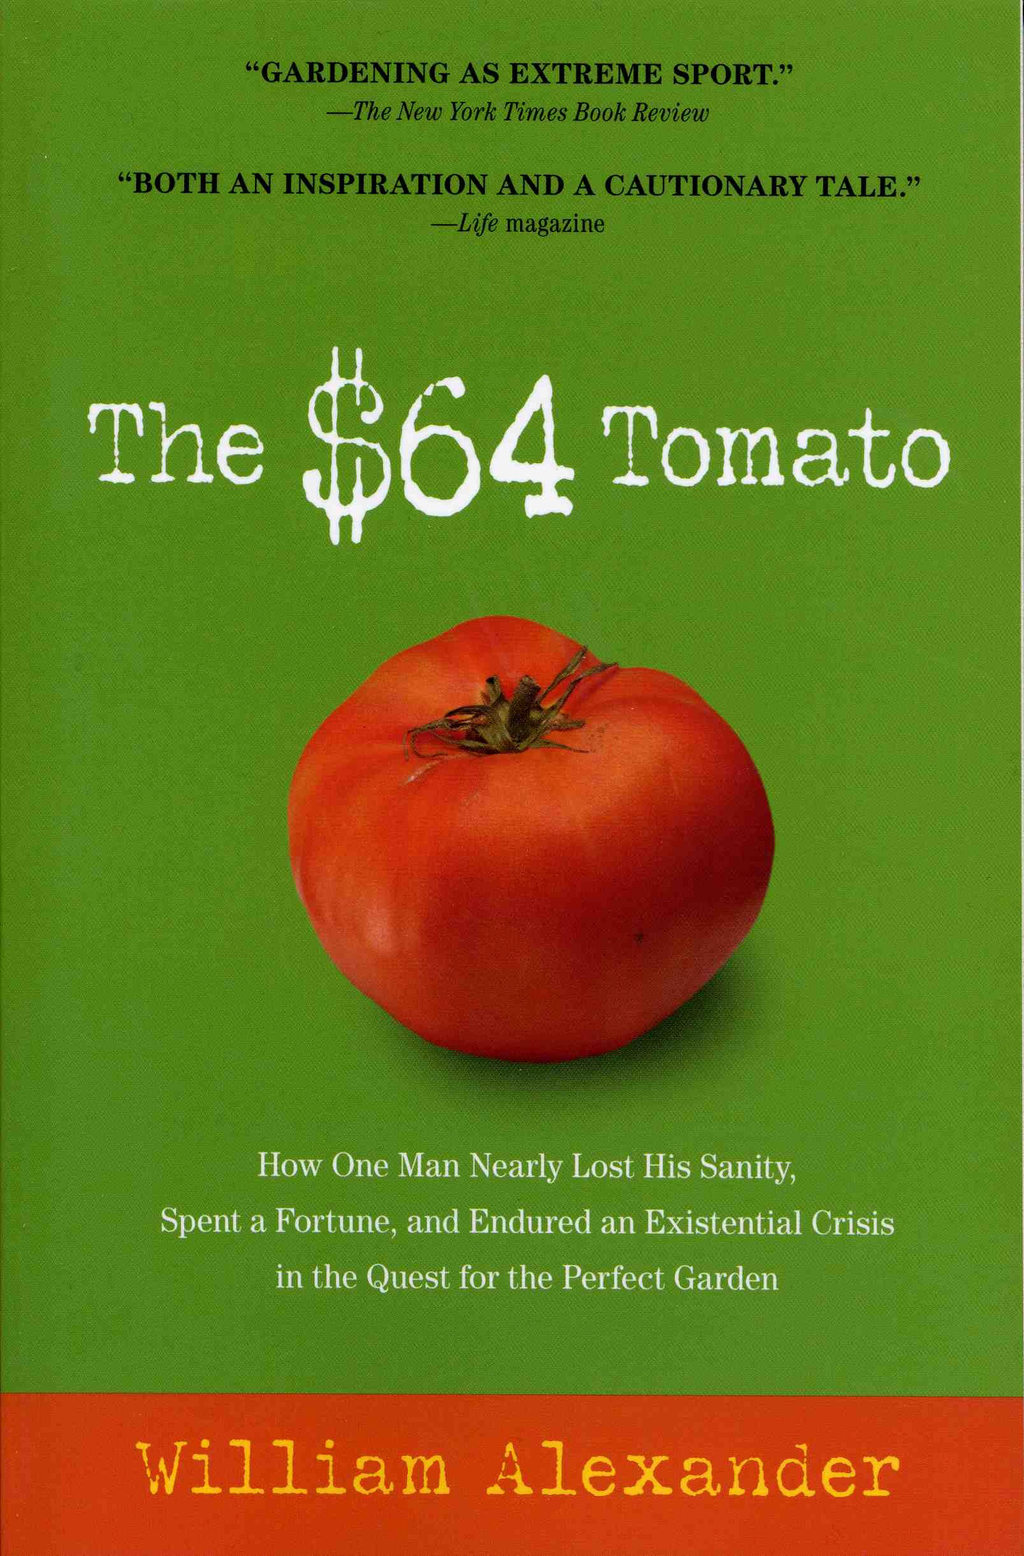 The $64 Tomato By: William Alexander